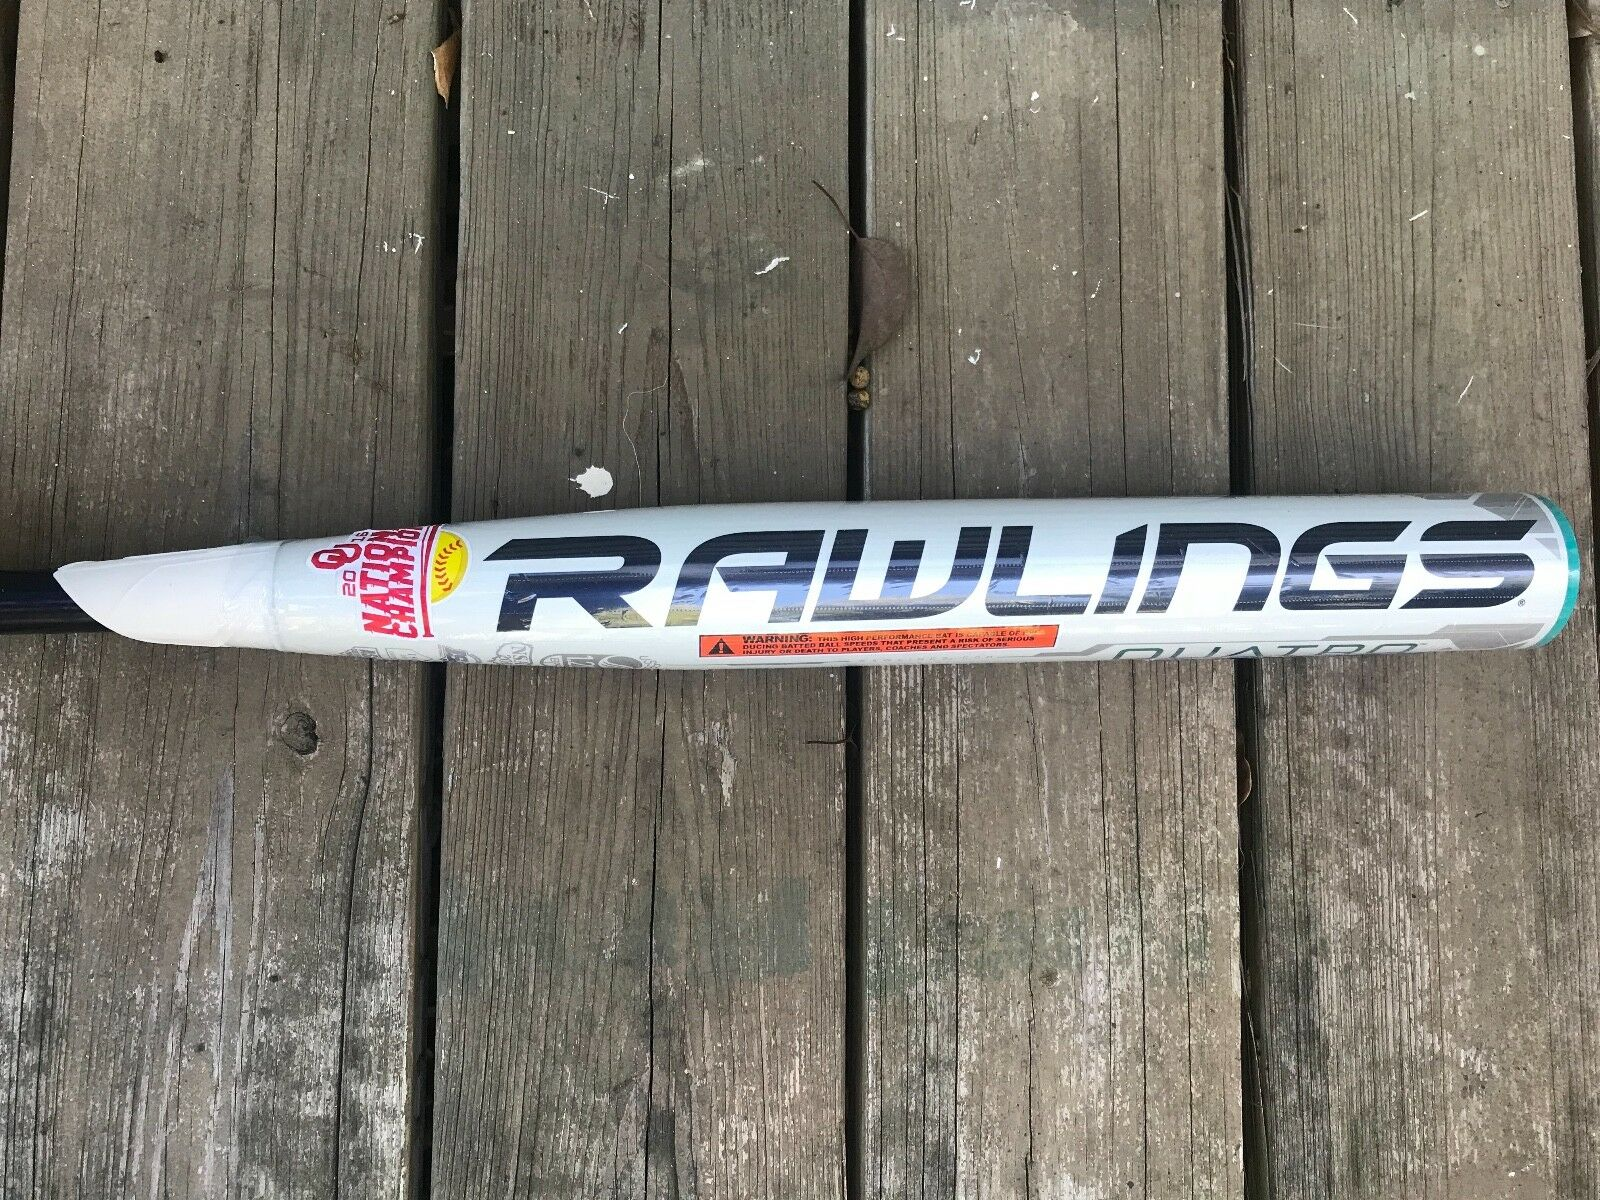 Rawlings Quatro -10 Softball Bat size 33/24 Brand new in wrapper